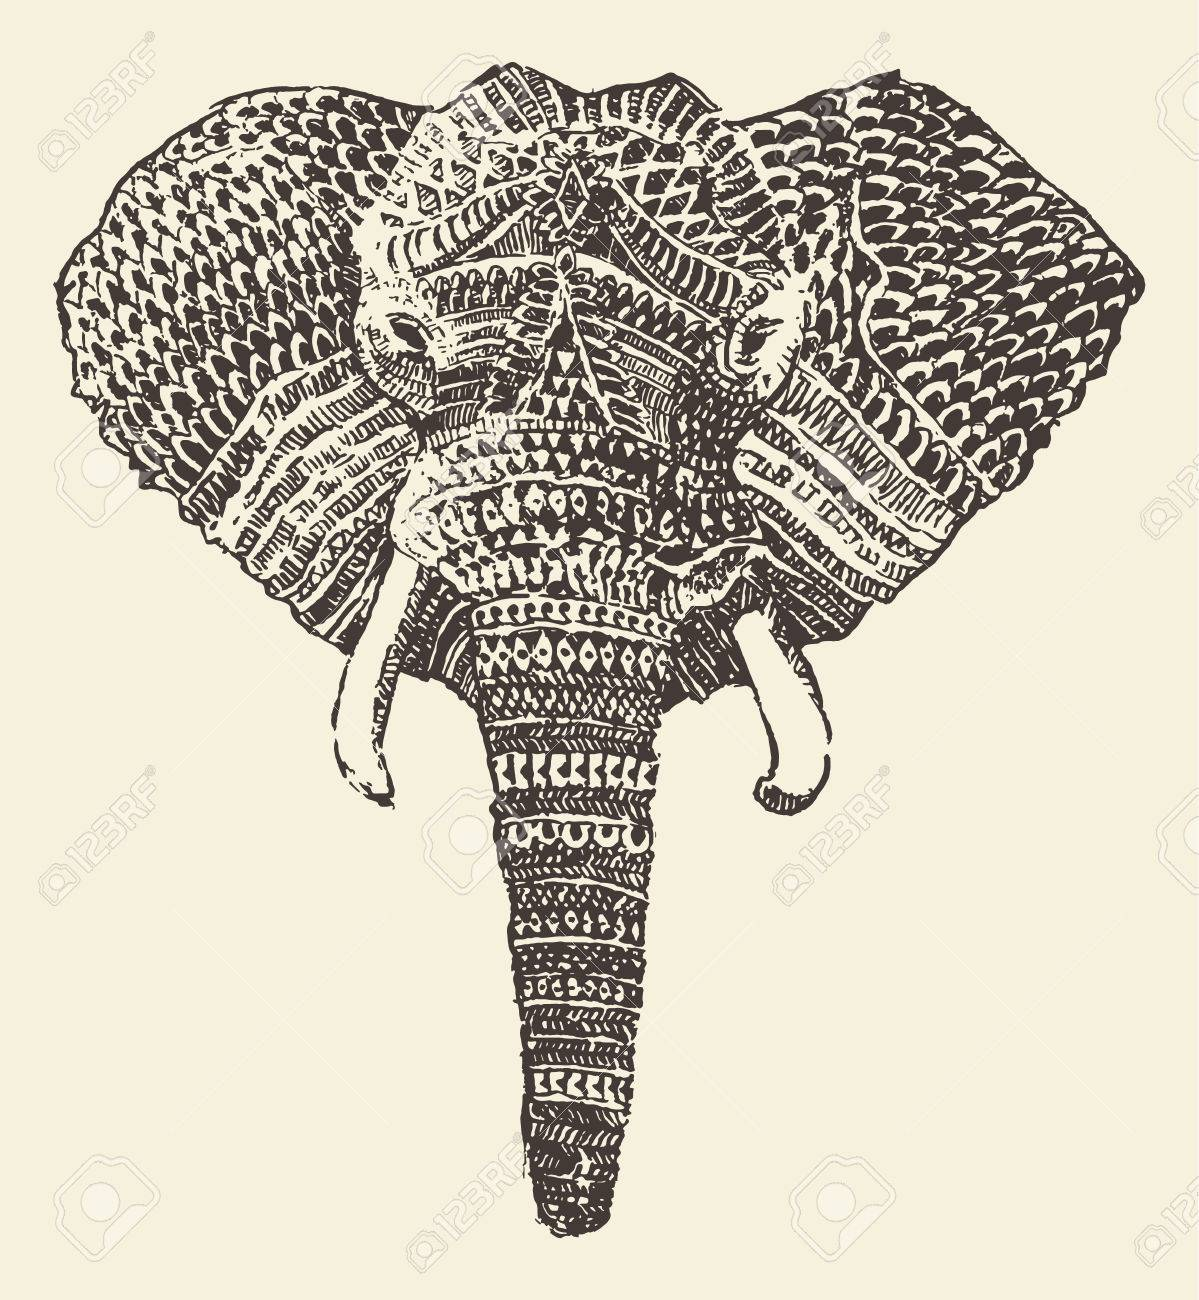 1199x1300 Elephant Head Stock Photos. Royalty Free Business Images